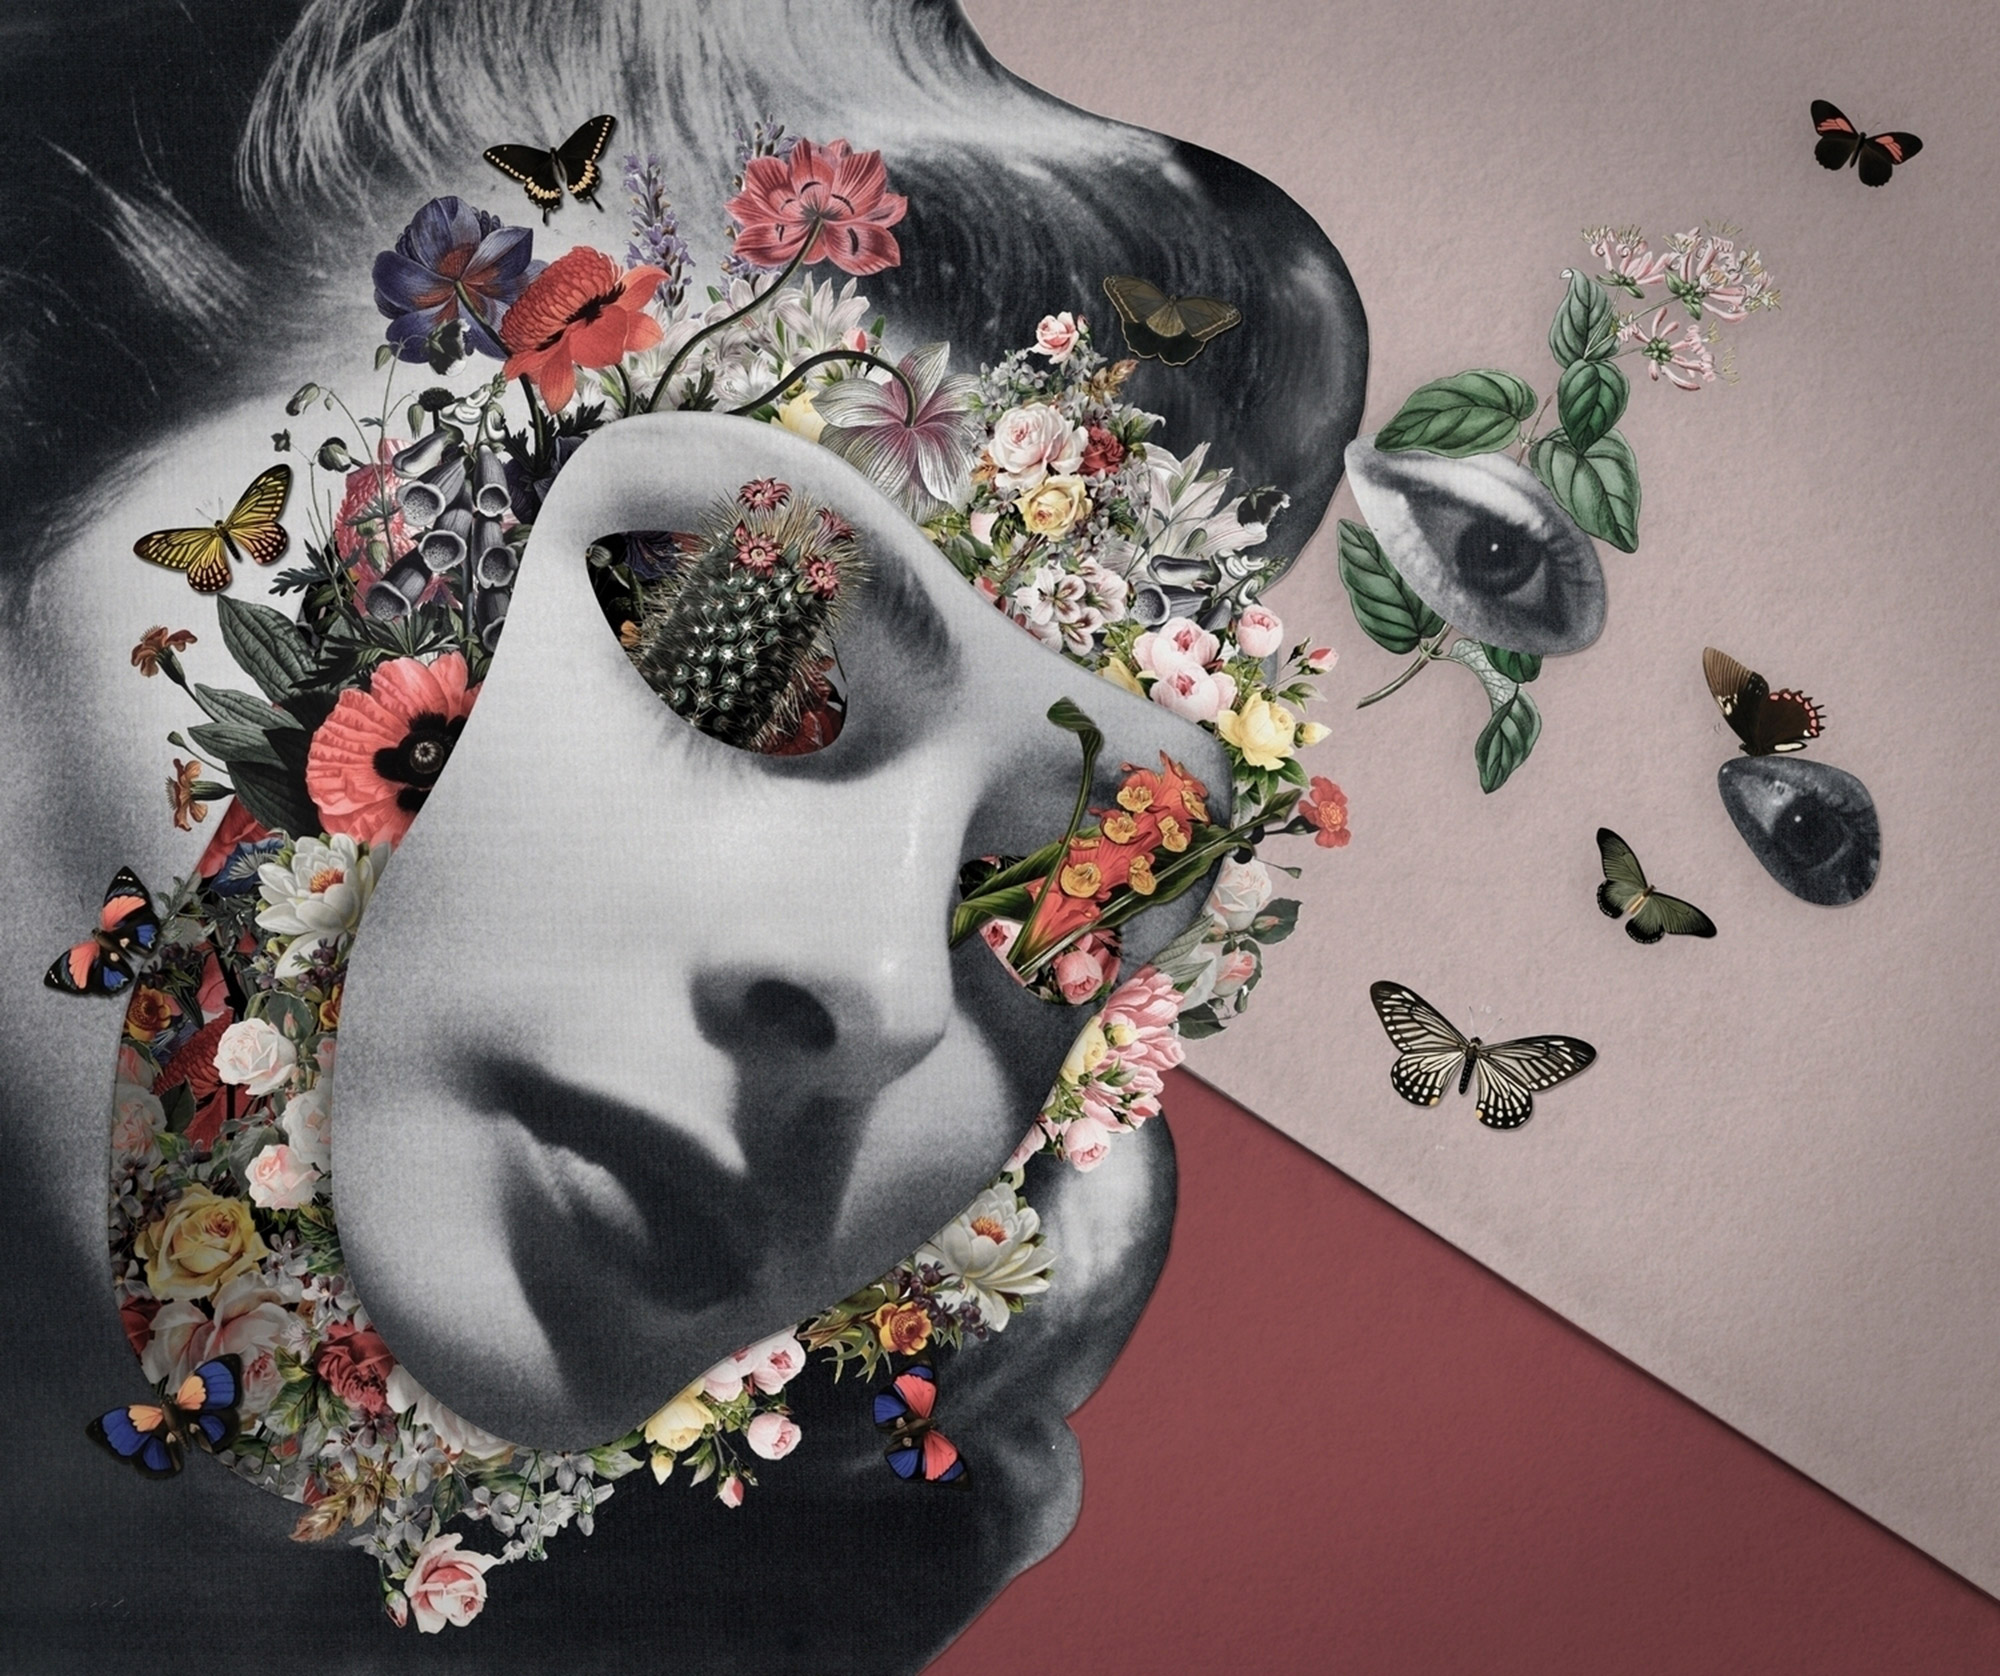 Playfully Complex Narratives in Collages by Sombra